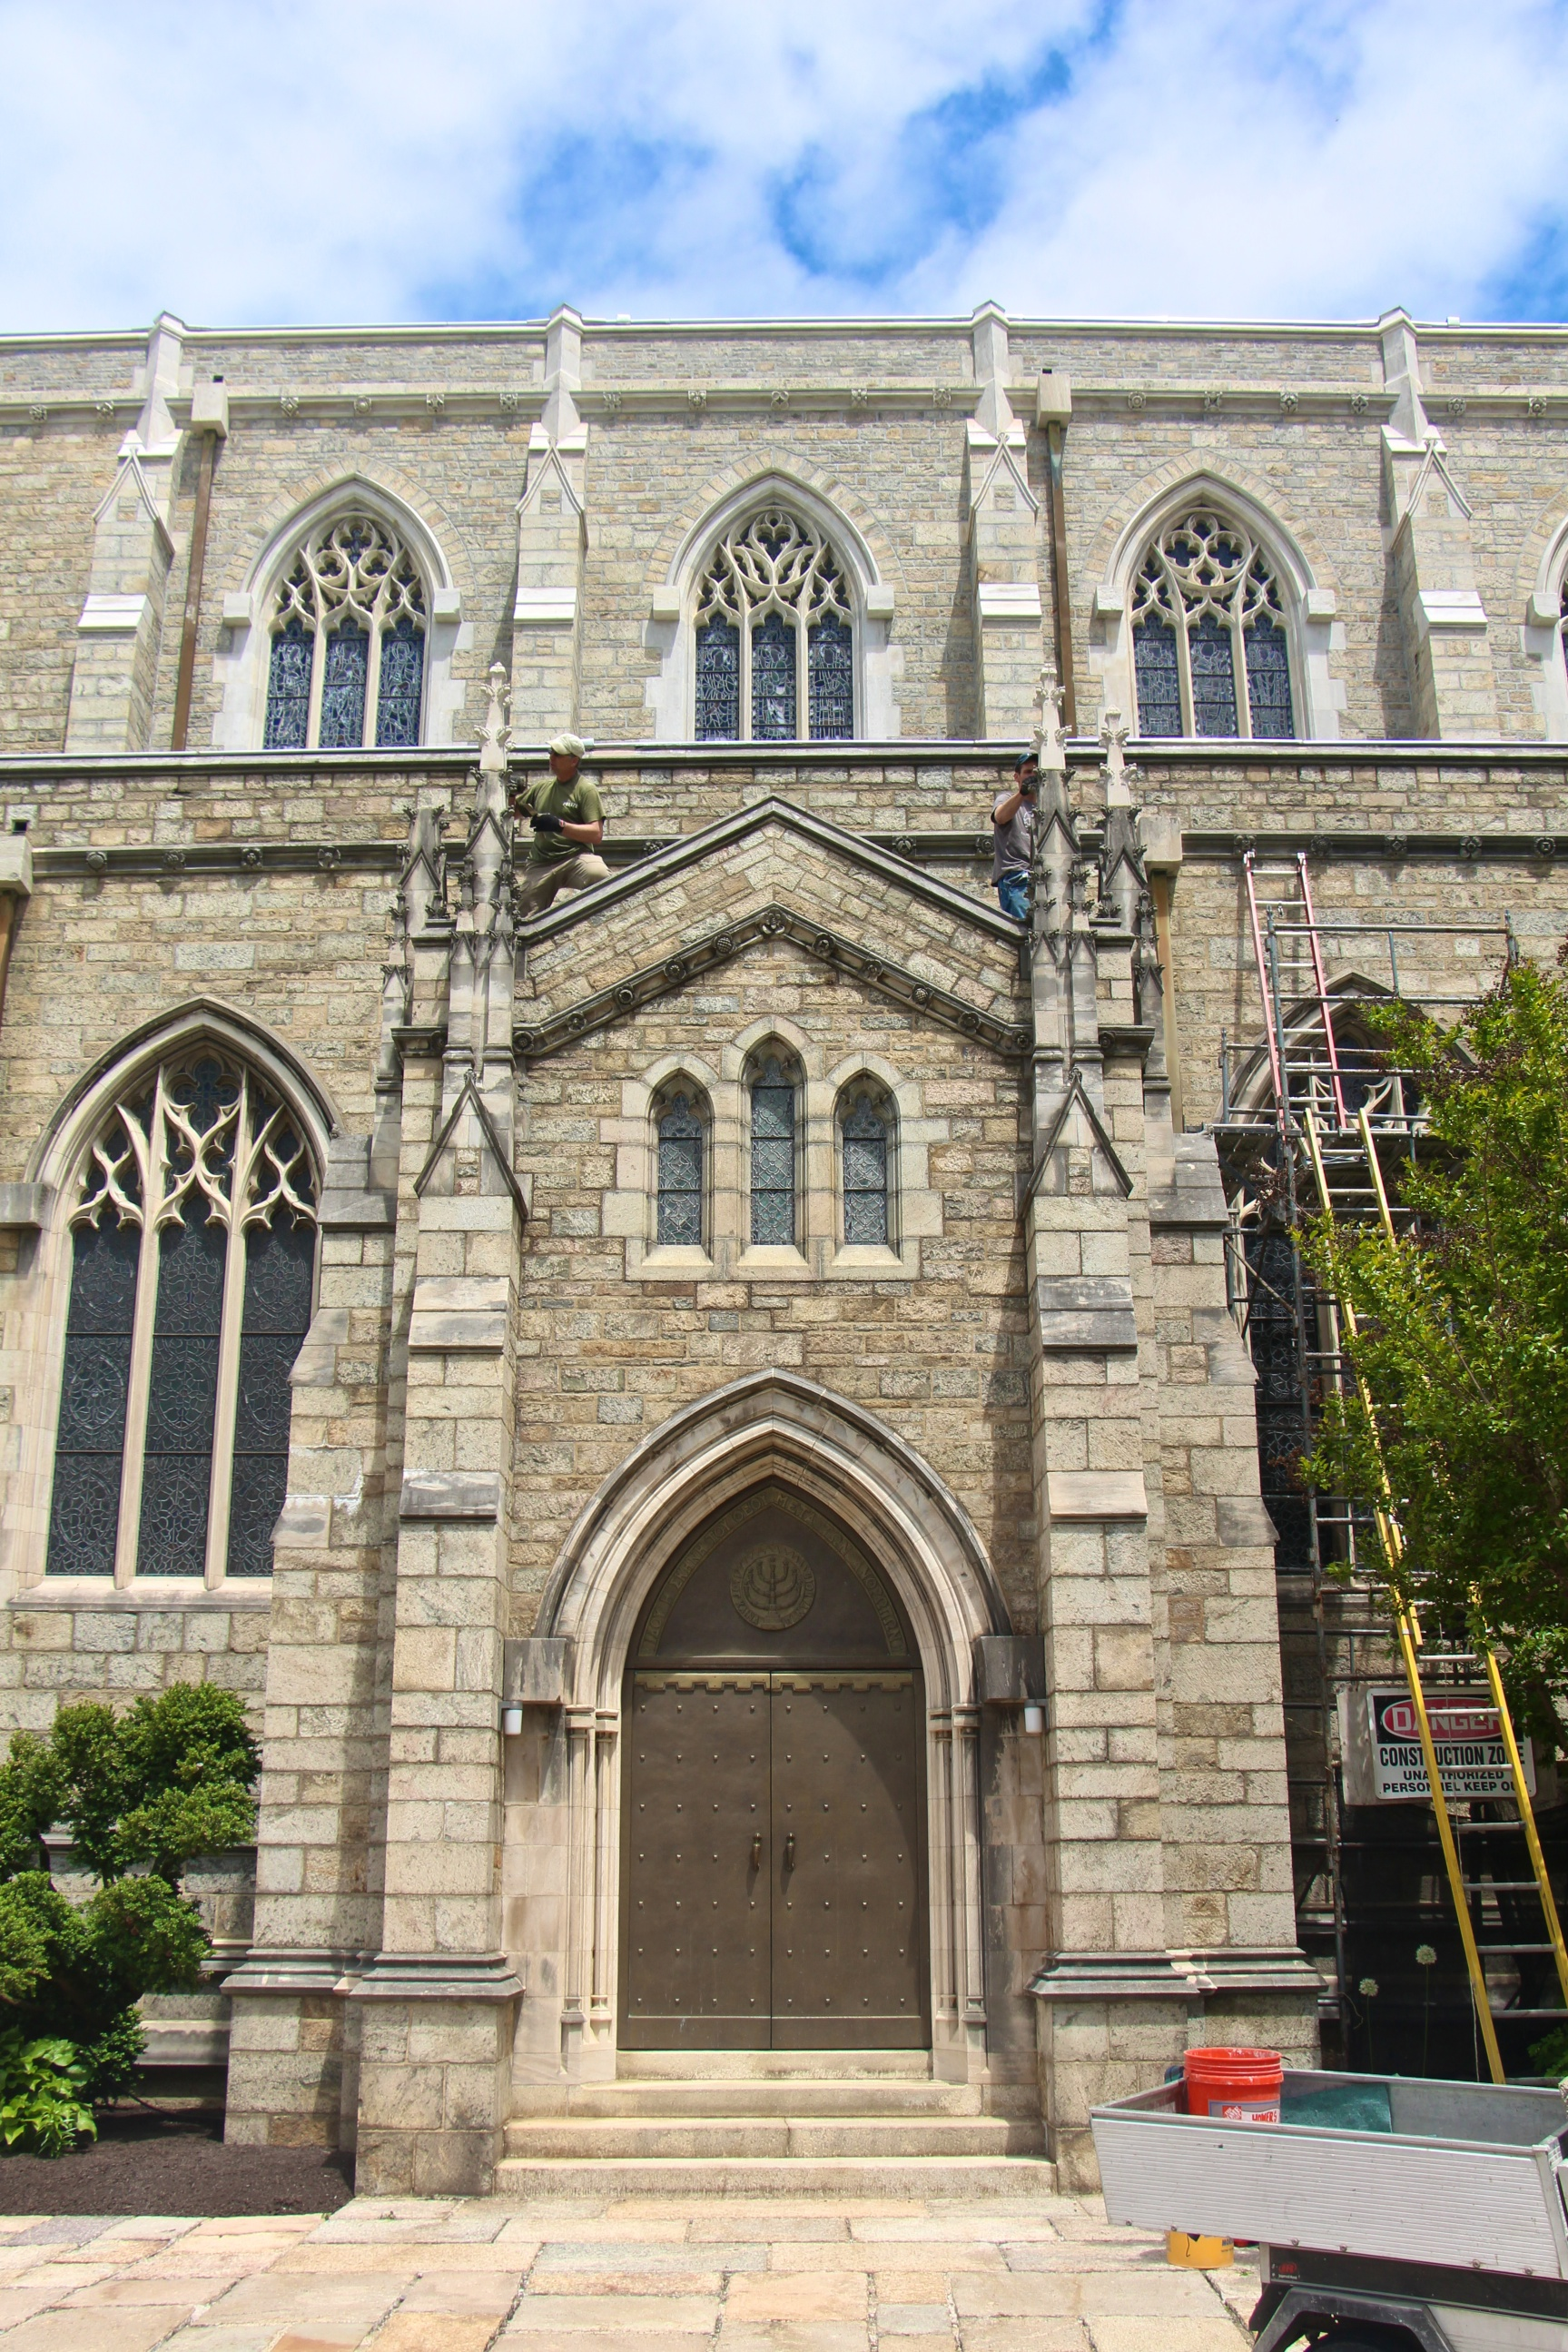 Figure 1: The entry to the south nave of Bryn Athyn Cathedral. The stone work of the upper wall has been completely restored and cleaned. The lower wall, including the stone work for the south entry, is in the process of being restored this year.